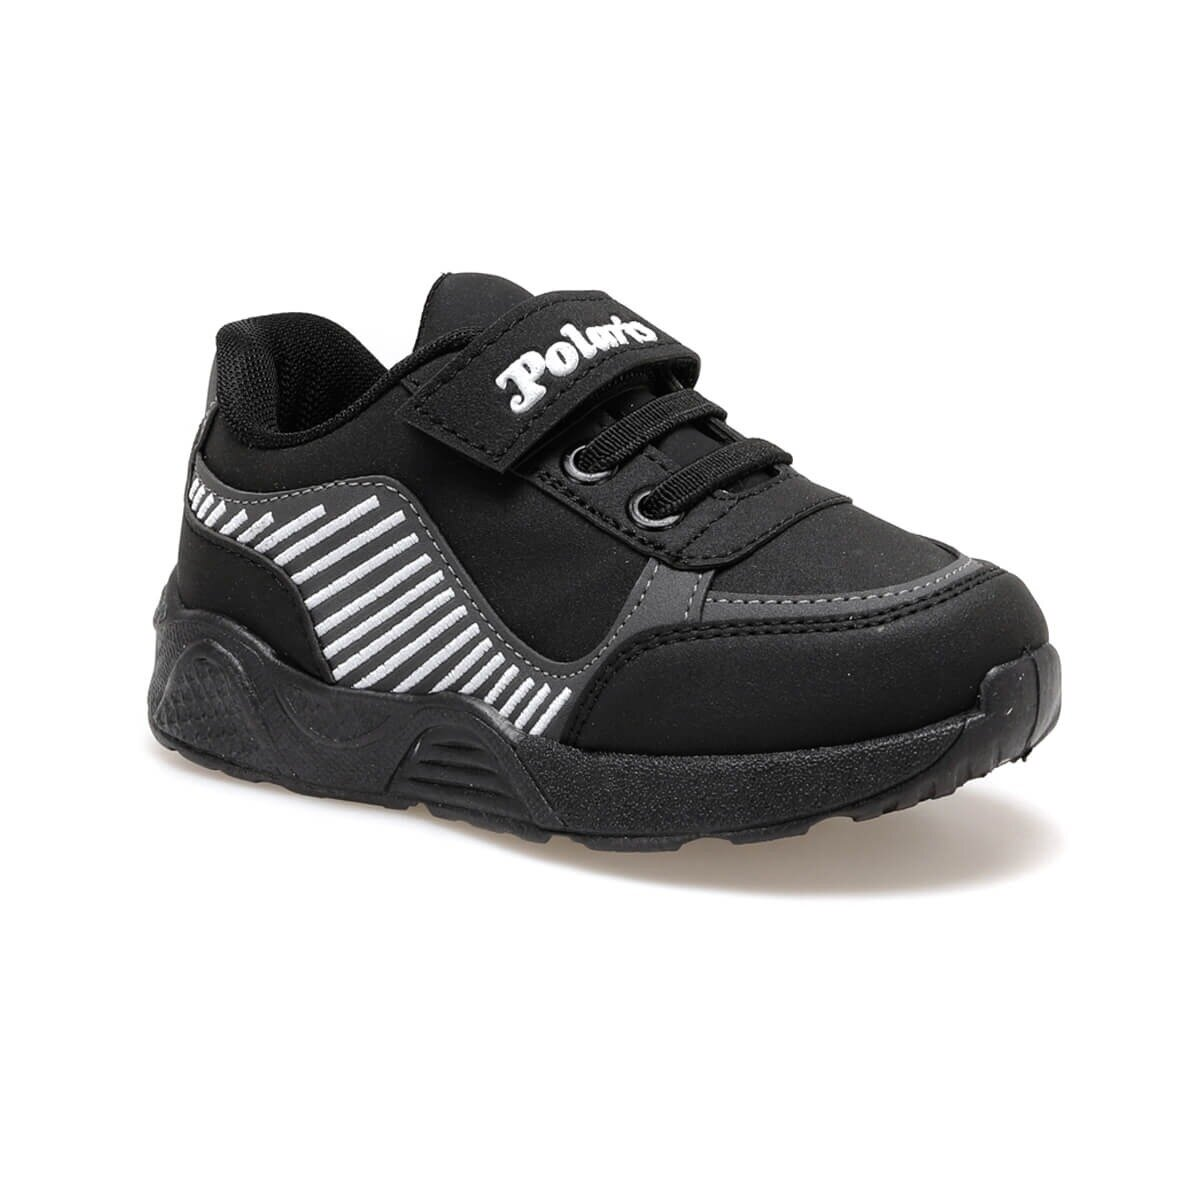 FLO 92.511873.P Black Male Child Sports Shoes Polaris